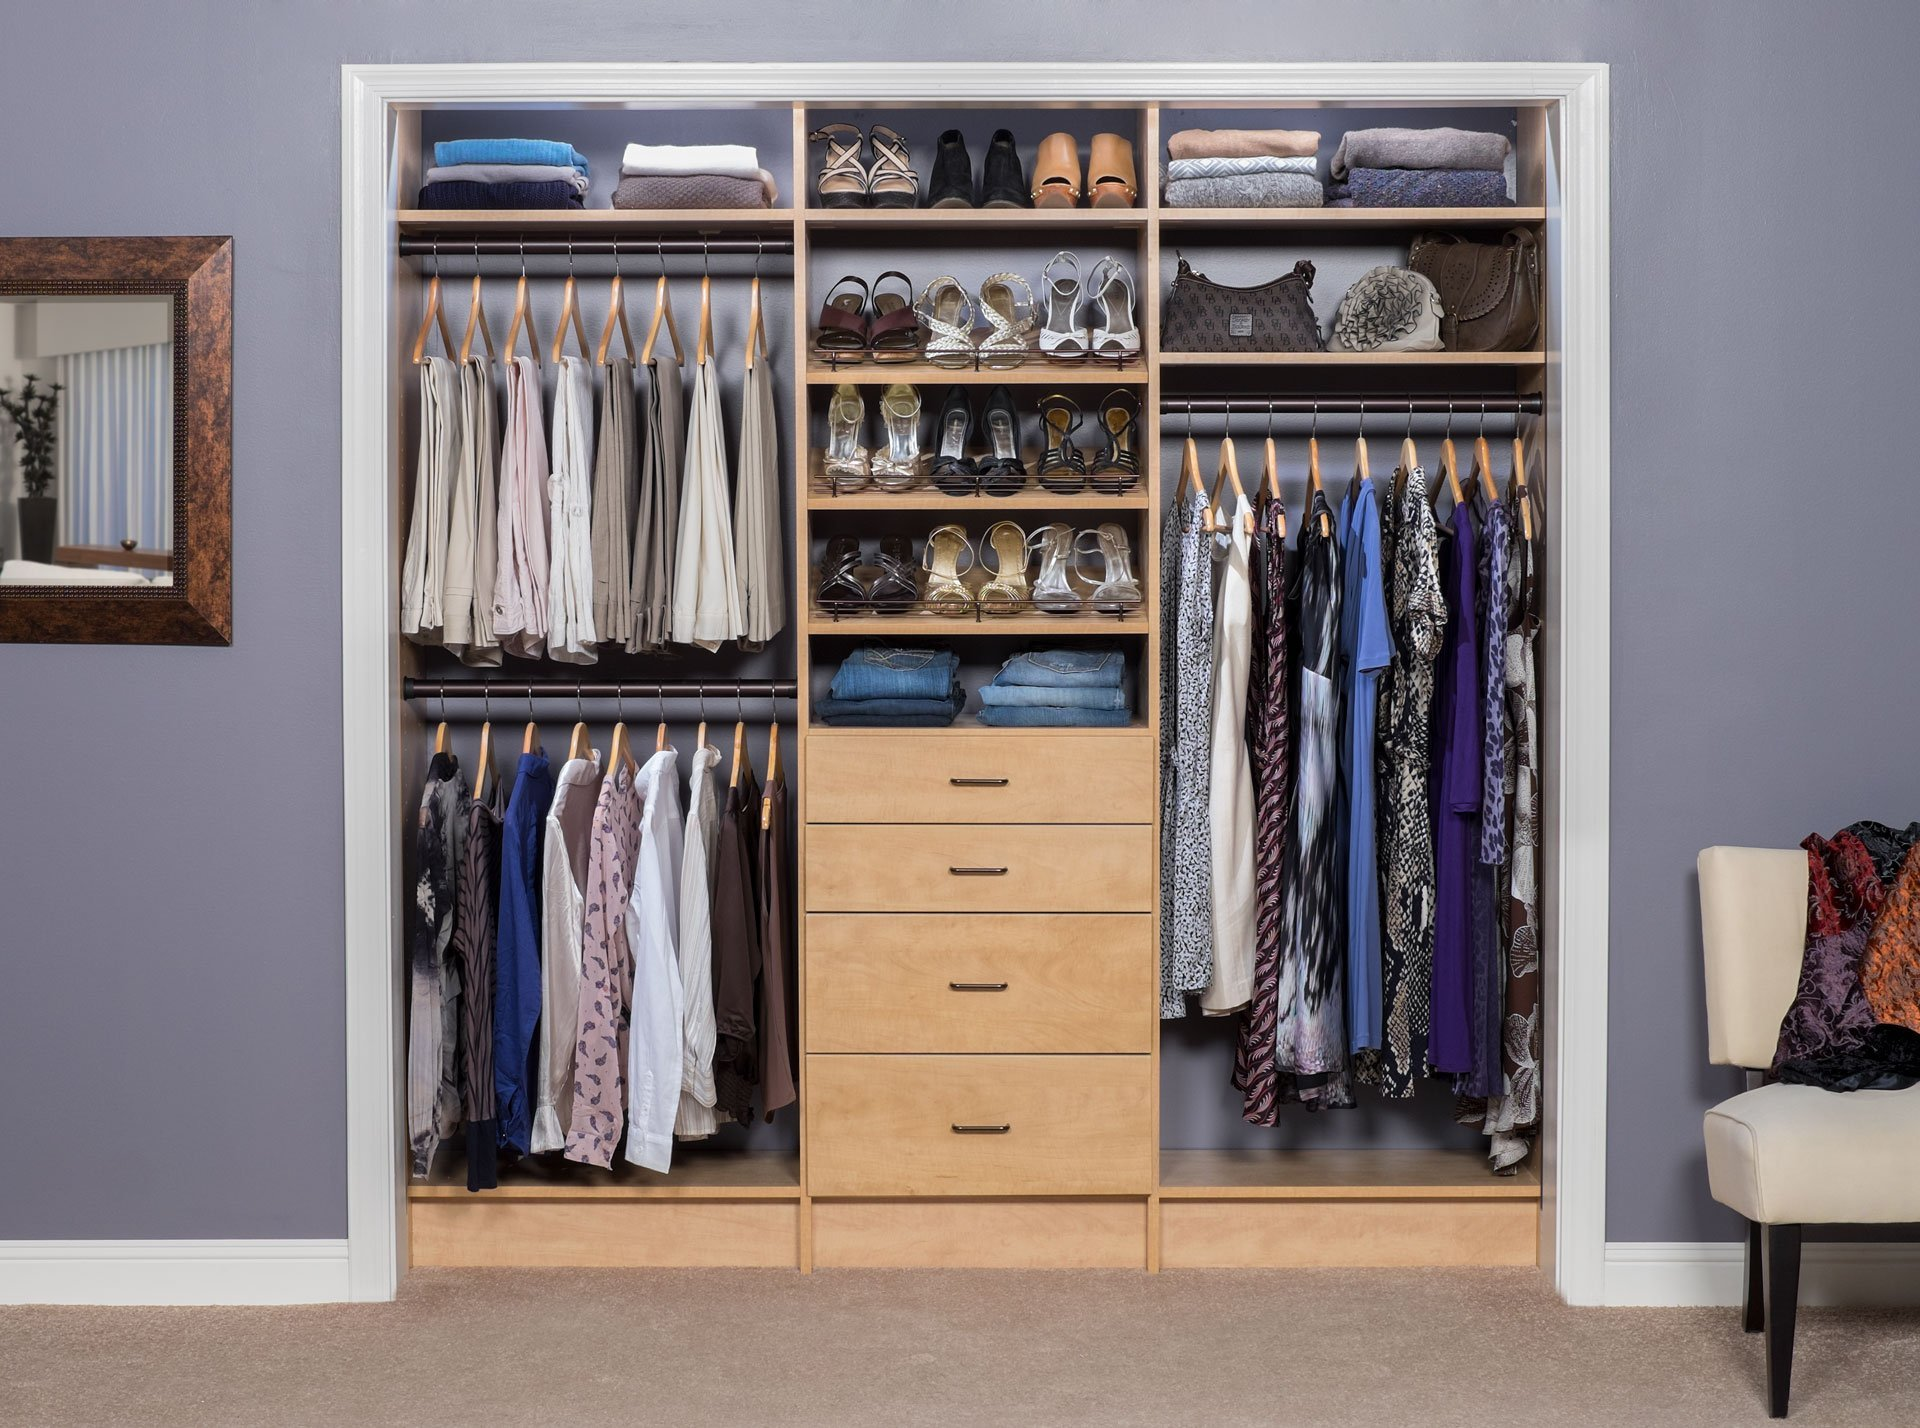 designs pcok emejing co design htm by decoration closets closet ideas denver i custom photos